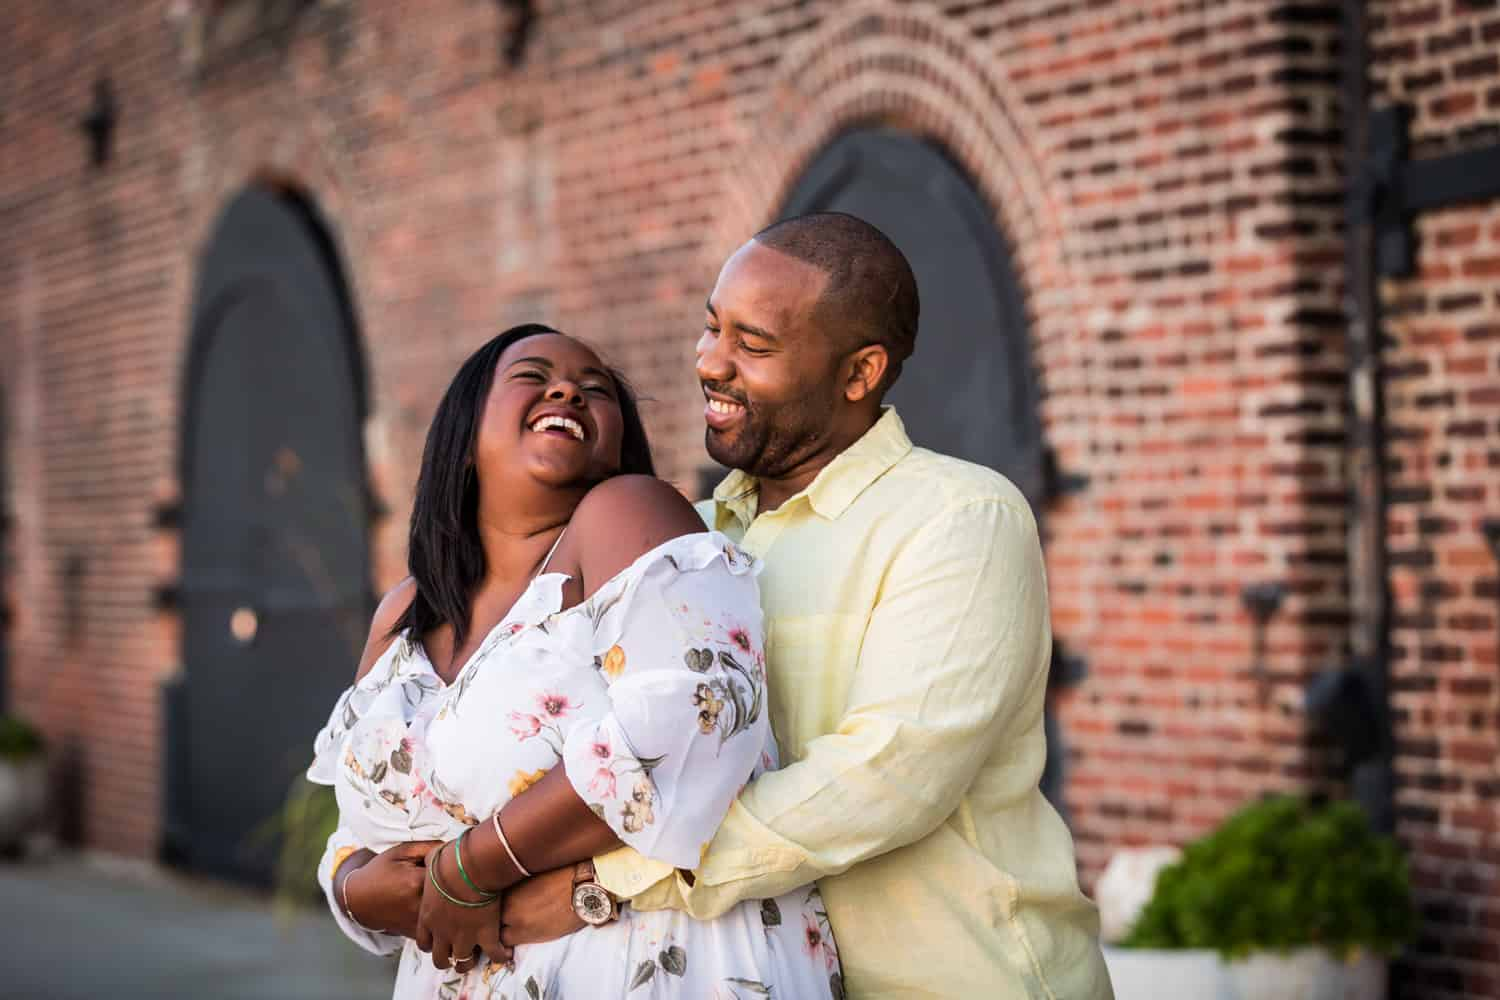 African American couple laughing in front of brick building during engagement shoot